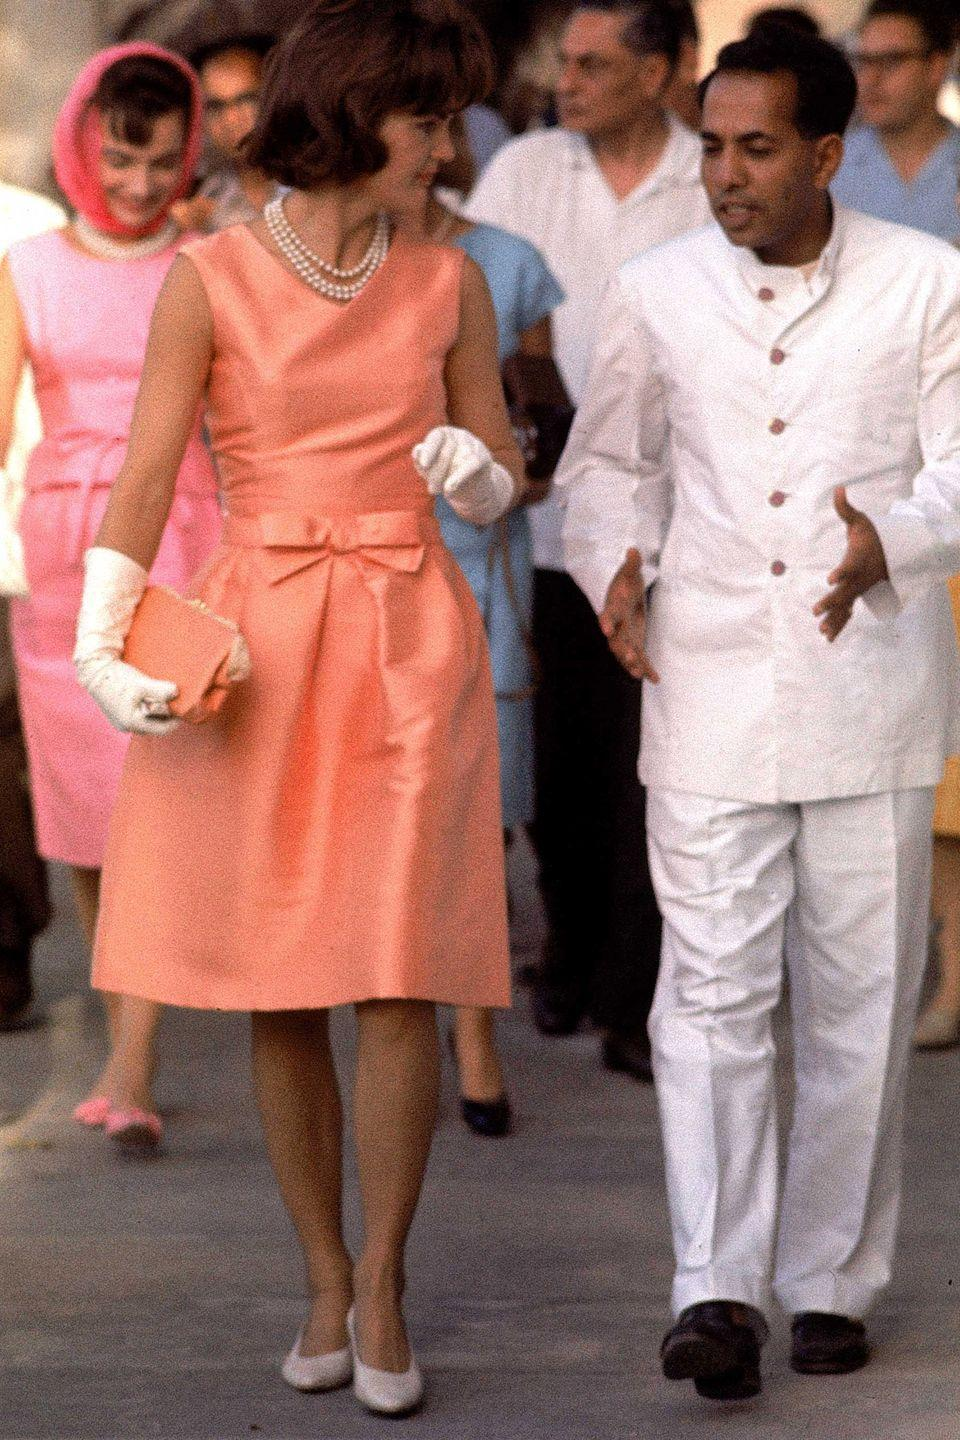 <p>For her state visit to India in 1962, Kennedy embraced the country's love of vibrant color. This orange-hued dress with bow detail was one of her many rainbow-hued ensembles for the excusion.</p>